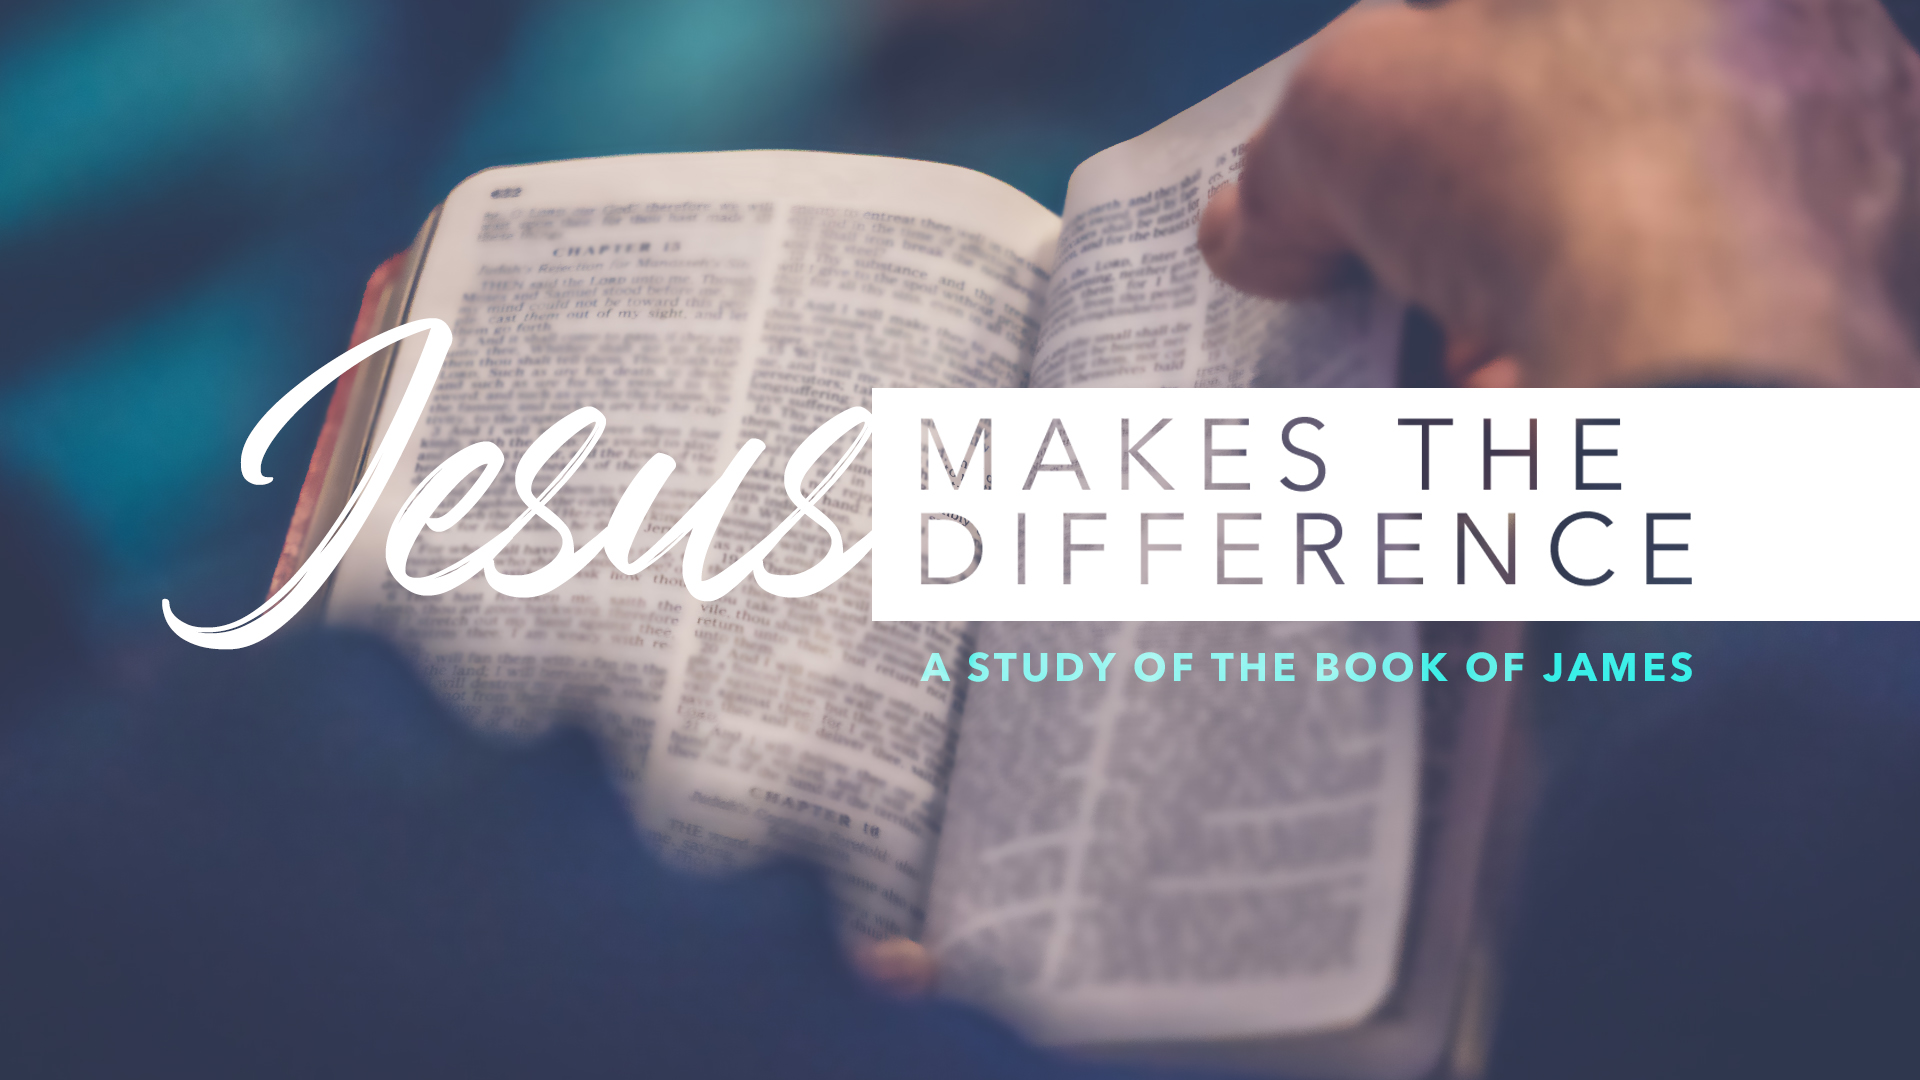 How I Listen - Jesus Makes the Difference